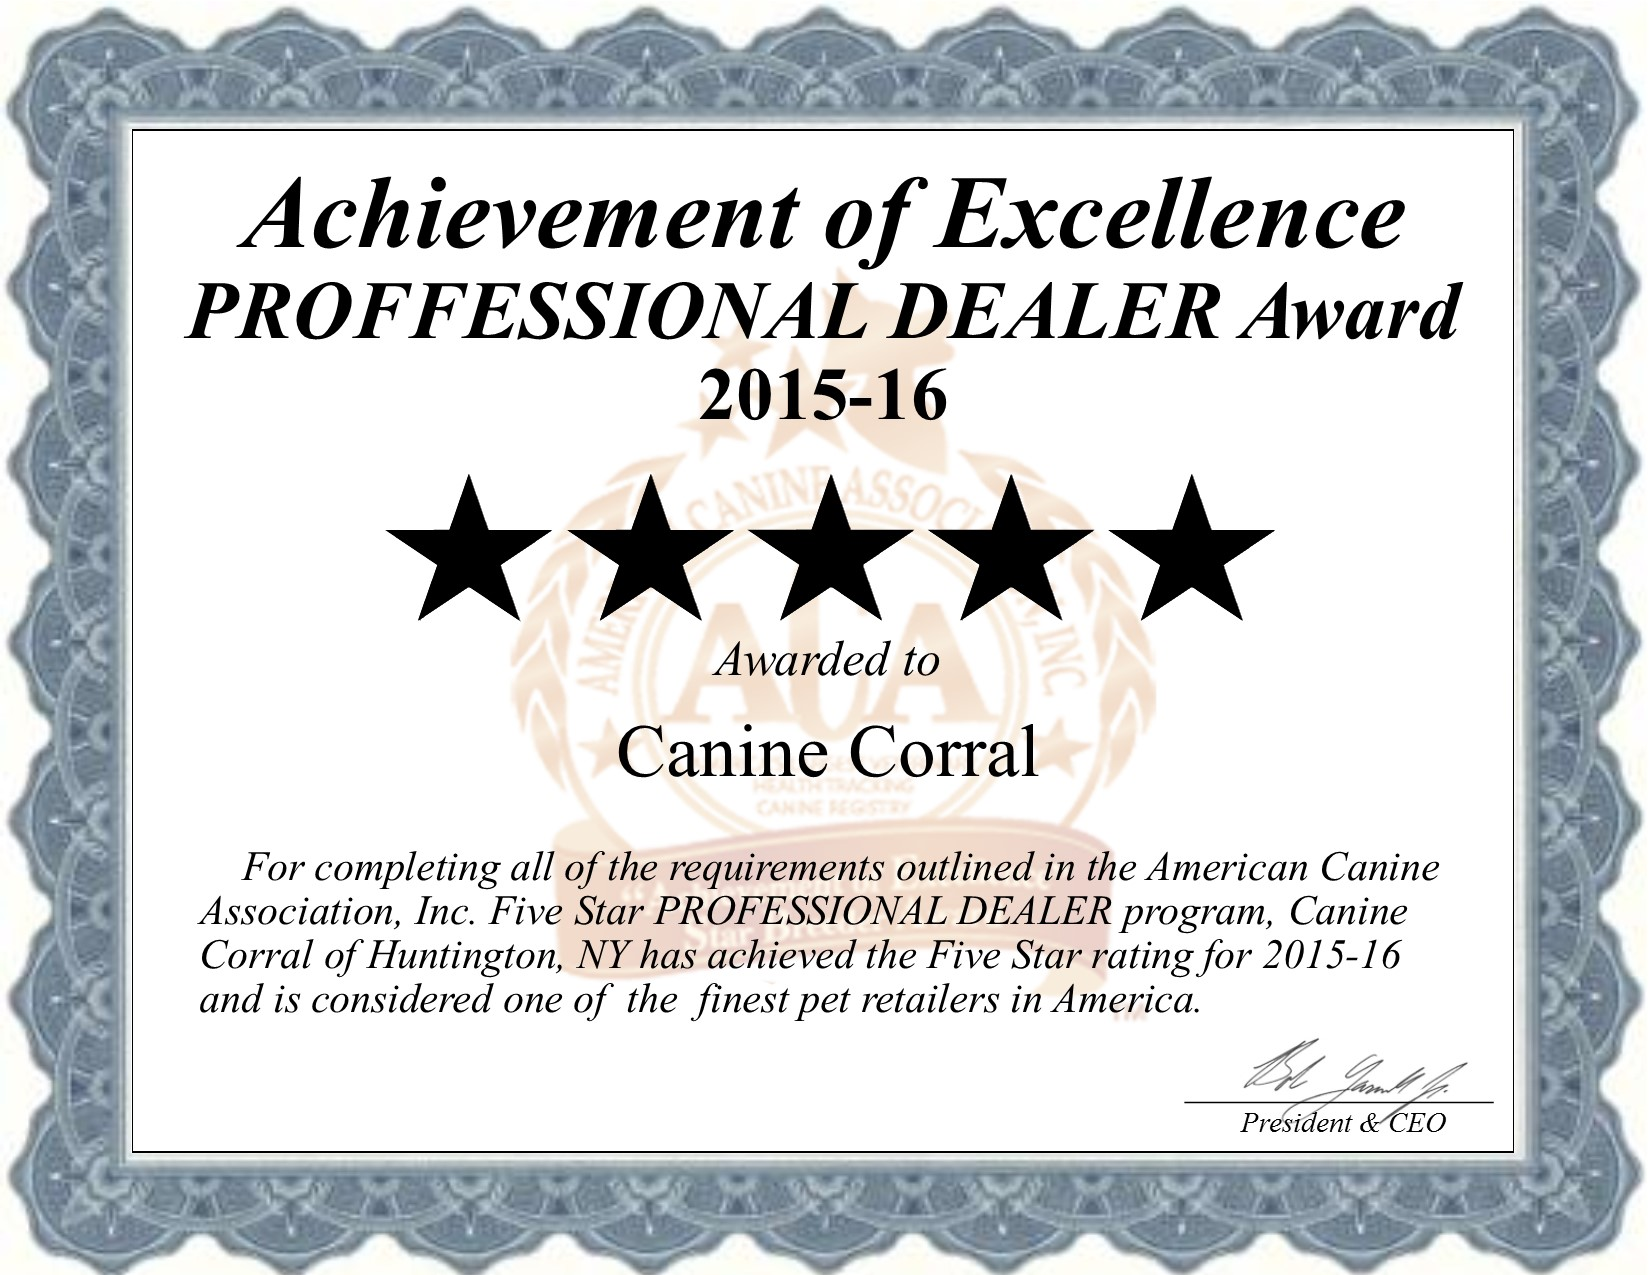 canine, corral, canine-corral, credetials, huntington, ny, new, york, pet, store, pet-store, long, island, longisland, star, retailer, certificate, puppy, mill, puppymill, five, star, retailer, professional, dealer